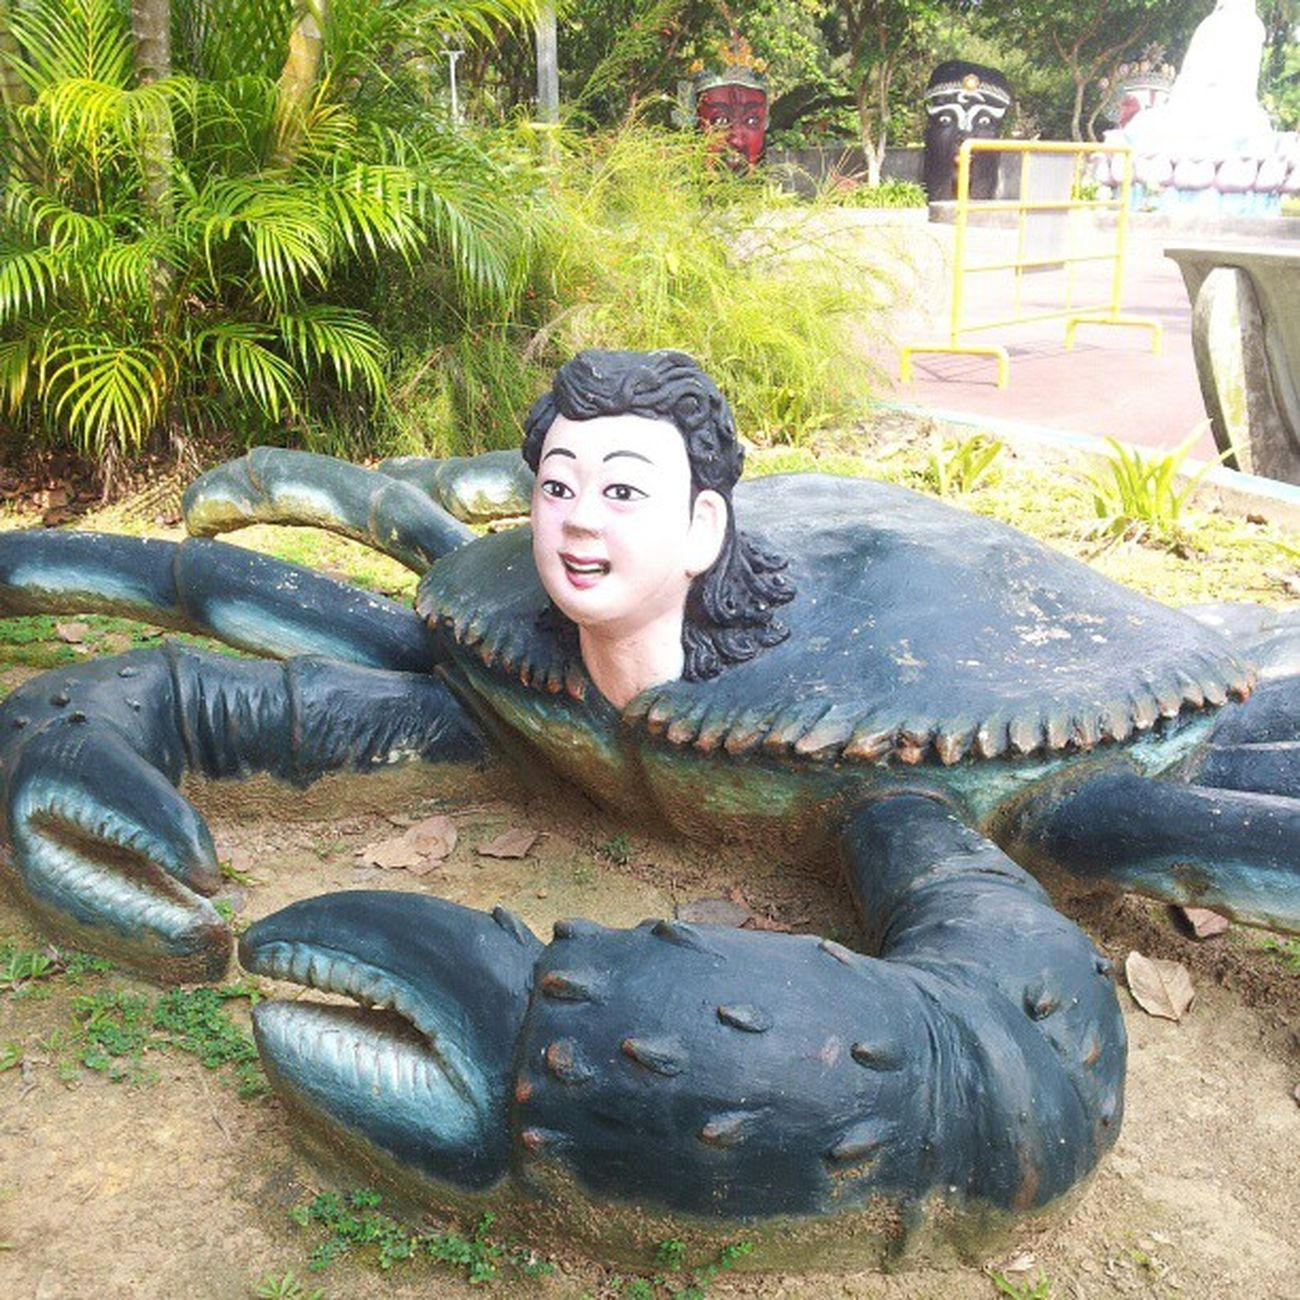 Yes, all sorts of things here exist to scare you. Imagine my parents bringing me here when I was a kid. Singapore Hawparvilla